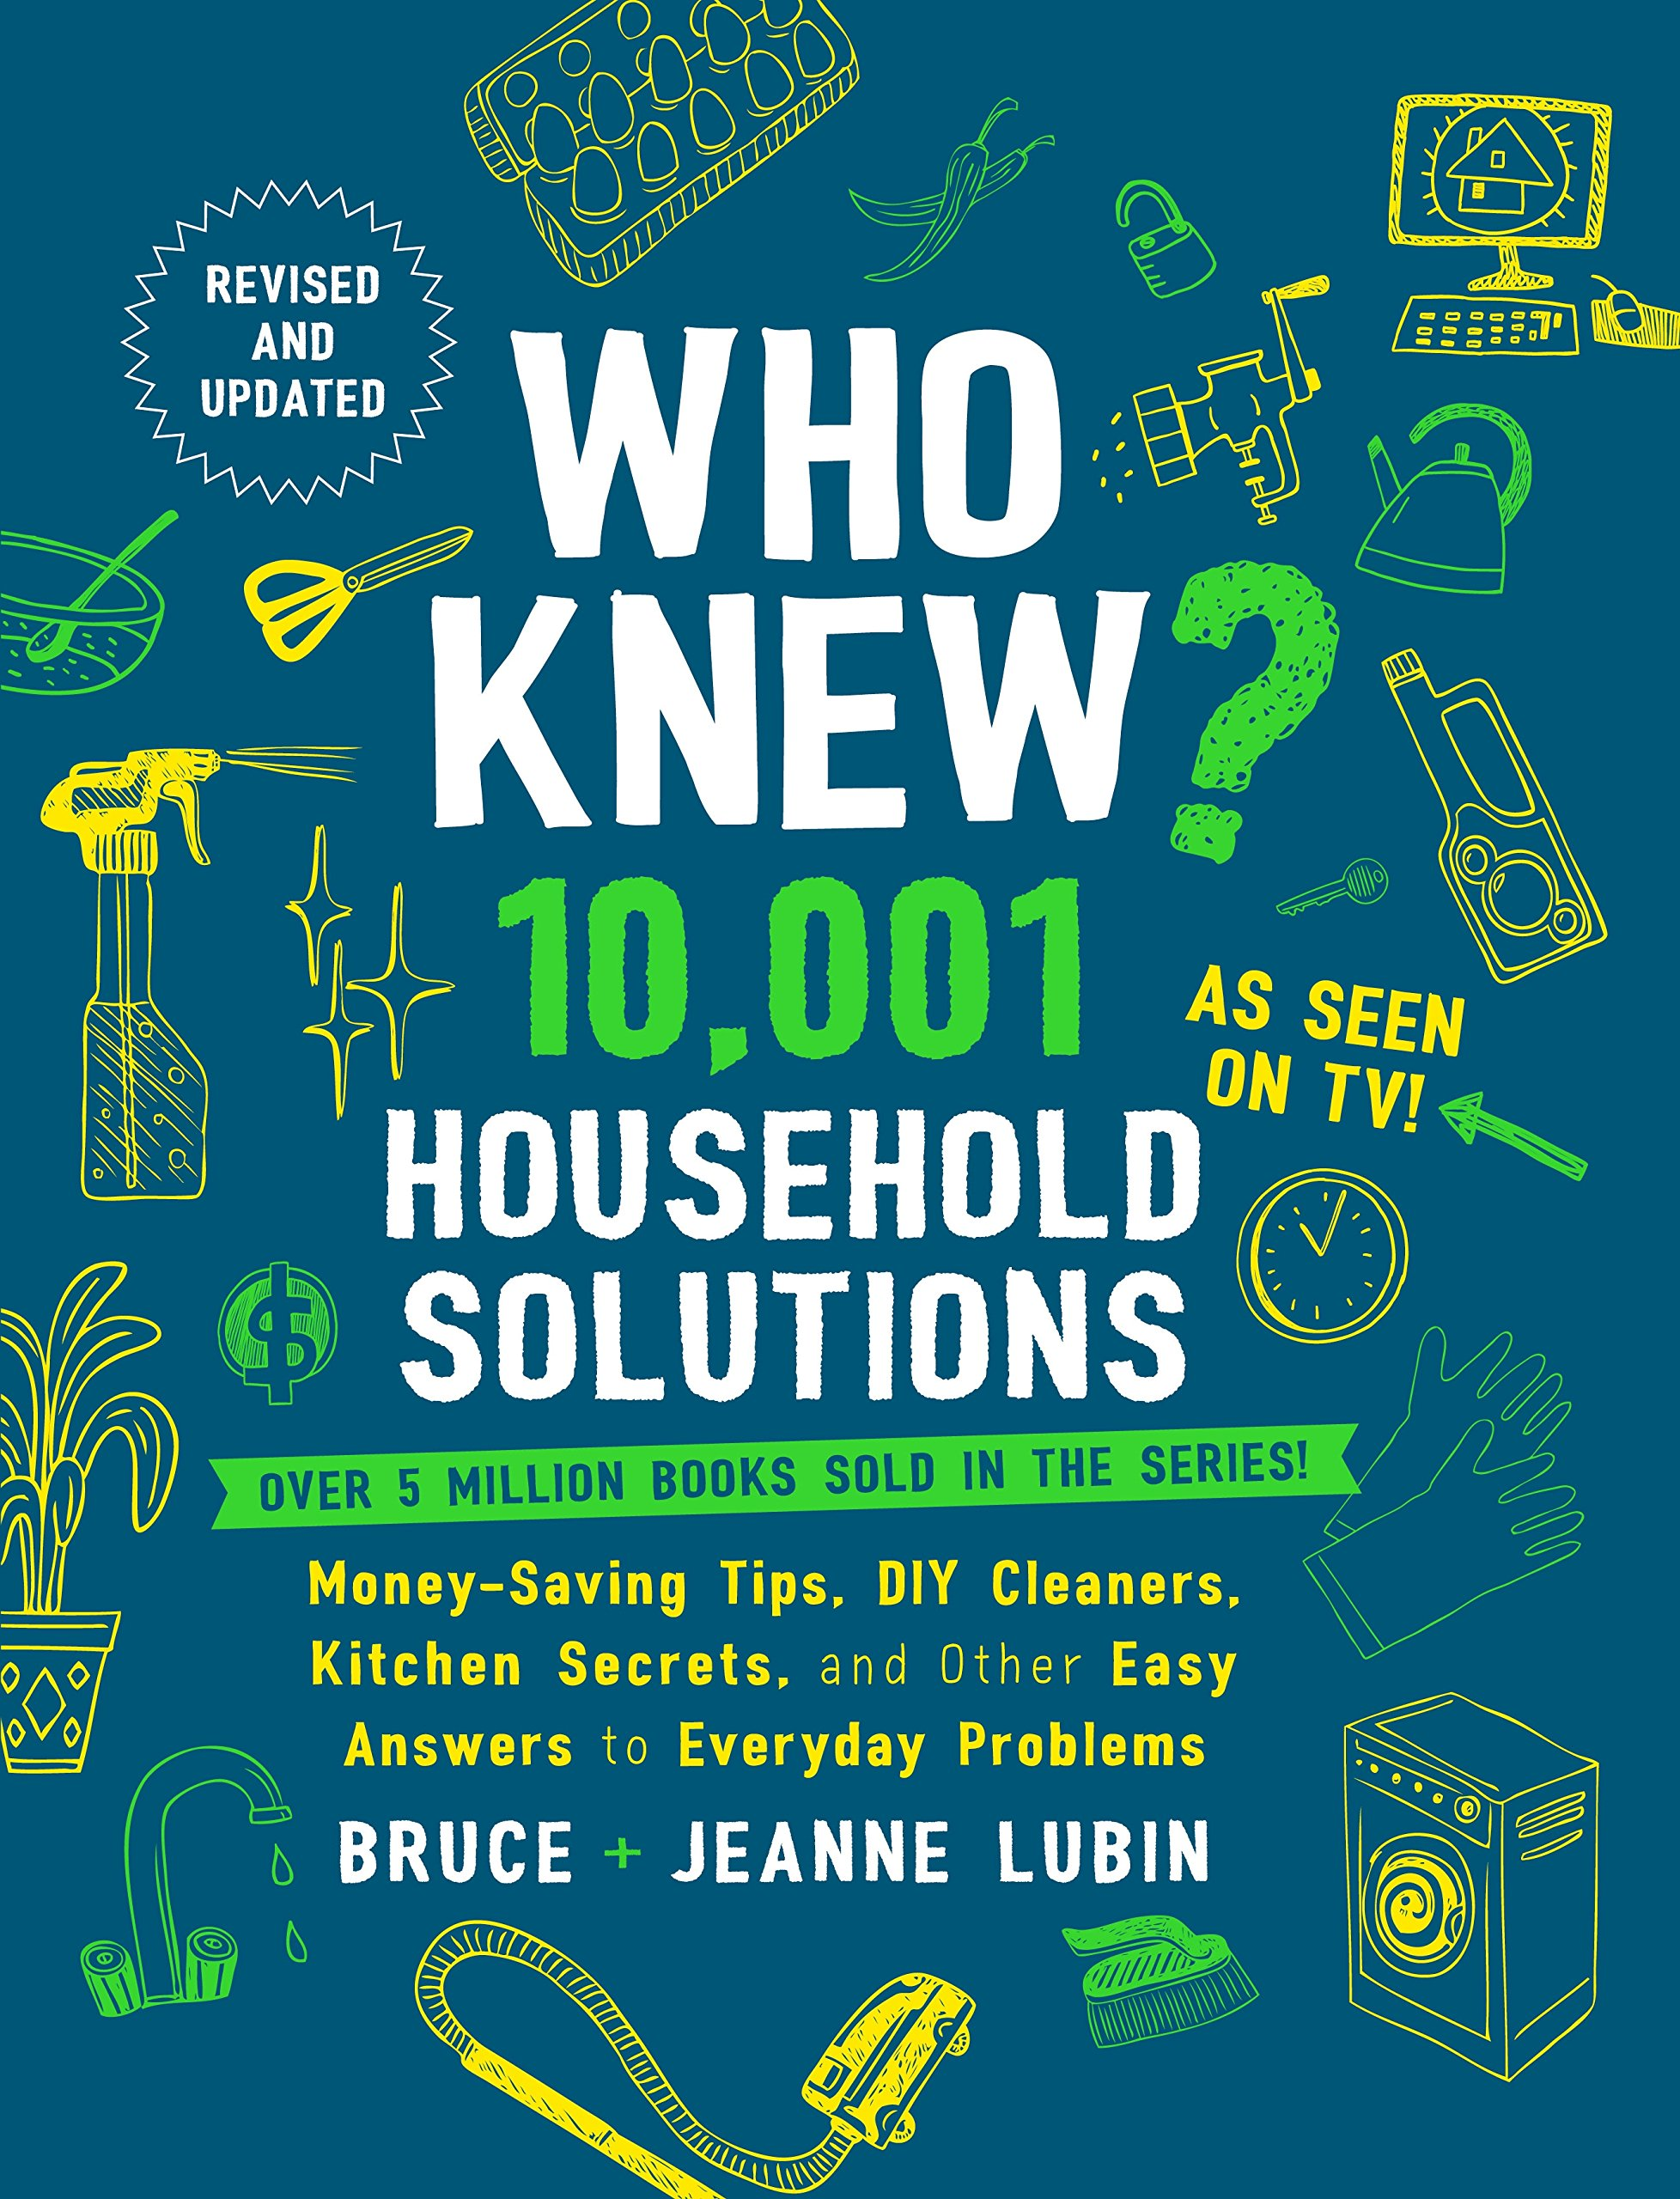 10, 001 Household Solutions: Money-Saving Tips, DIY Cleaners, Kitchen  Secrets, and Other Easy Answers to Everyday Problems: Bruce Lubin, Jeanne  Lubin: ...